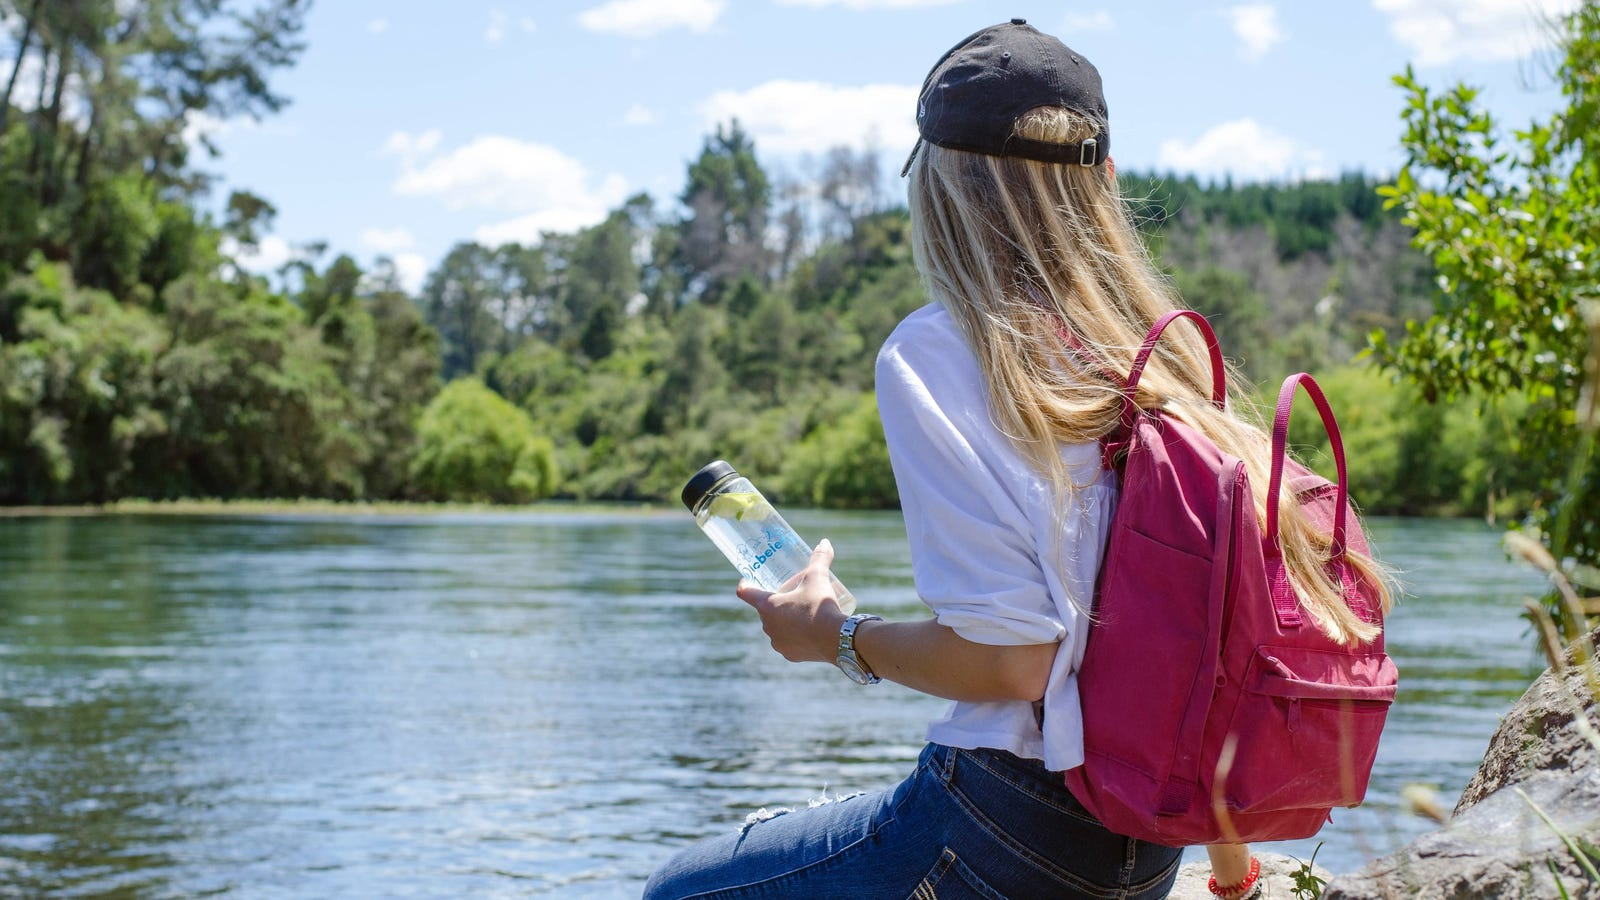 QnA VBage How to Turn Your Phone into a Summertime Survival Kit